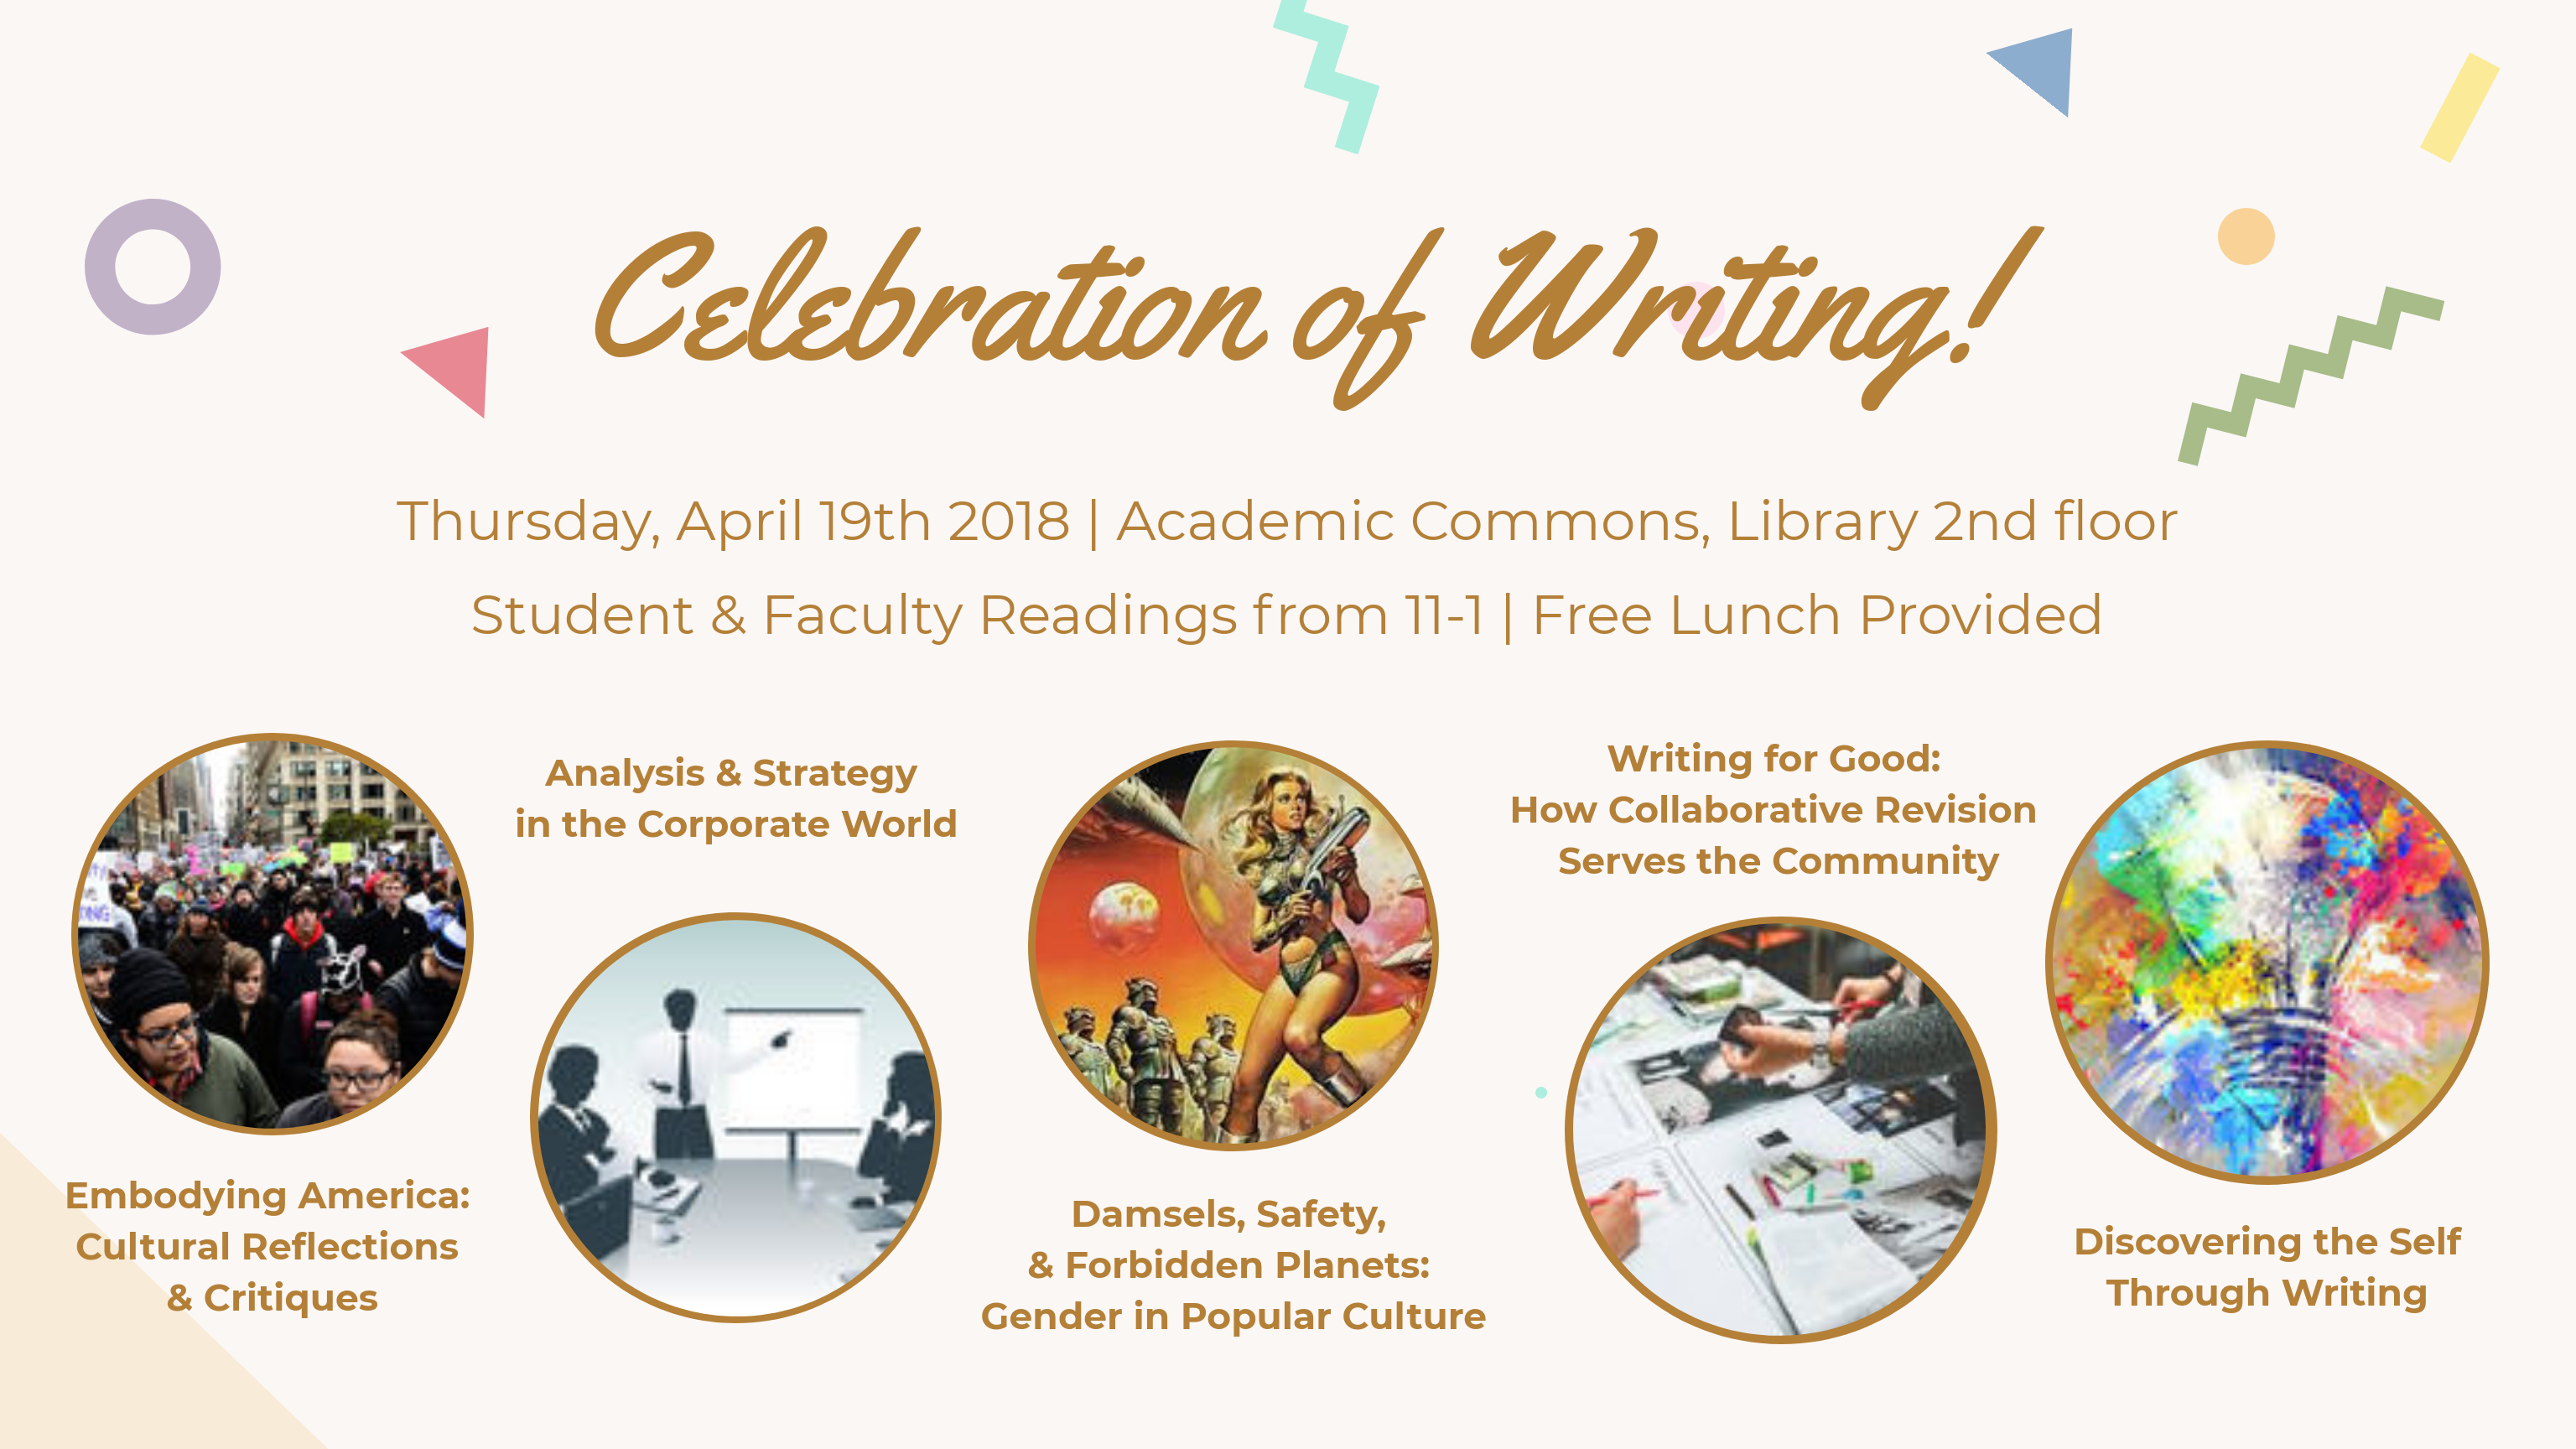 Celebration of Writing, April 19th, Library 2nd Floor, 5 sessions from 11-2